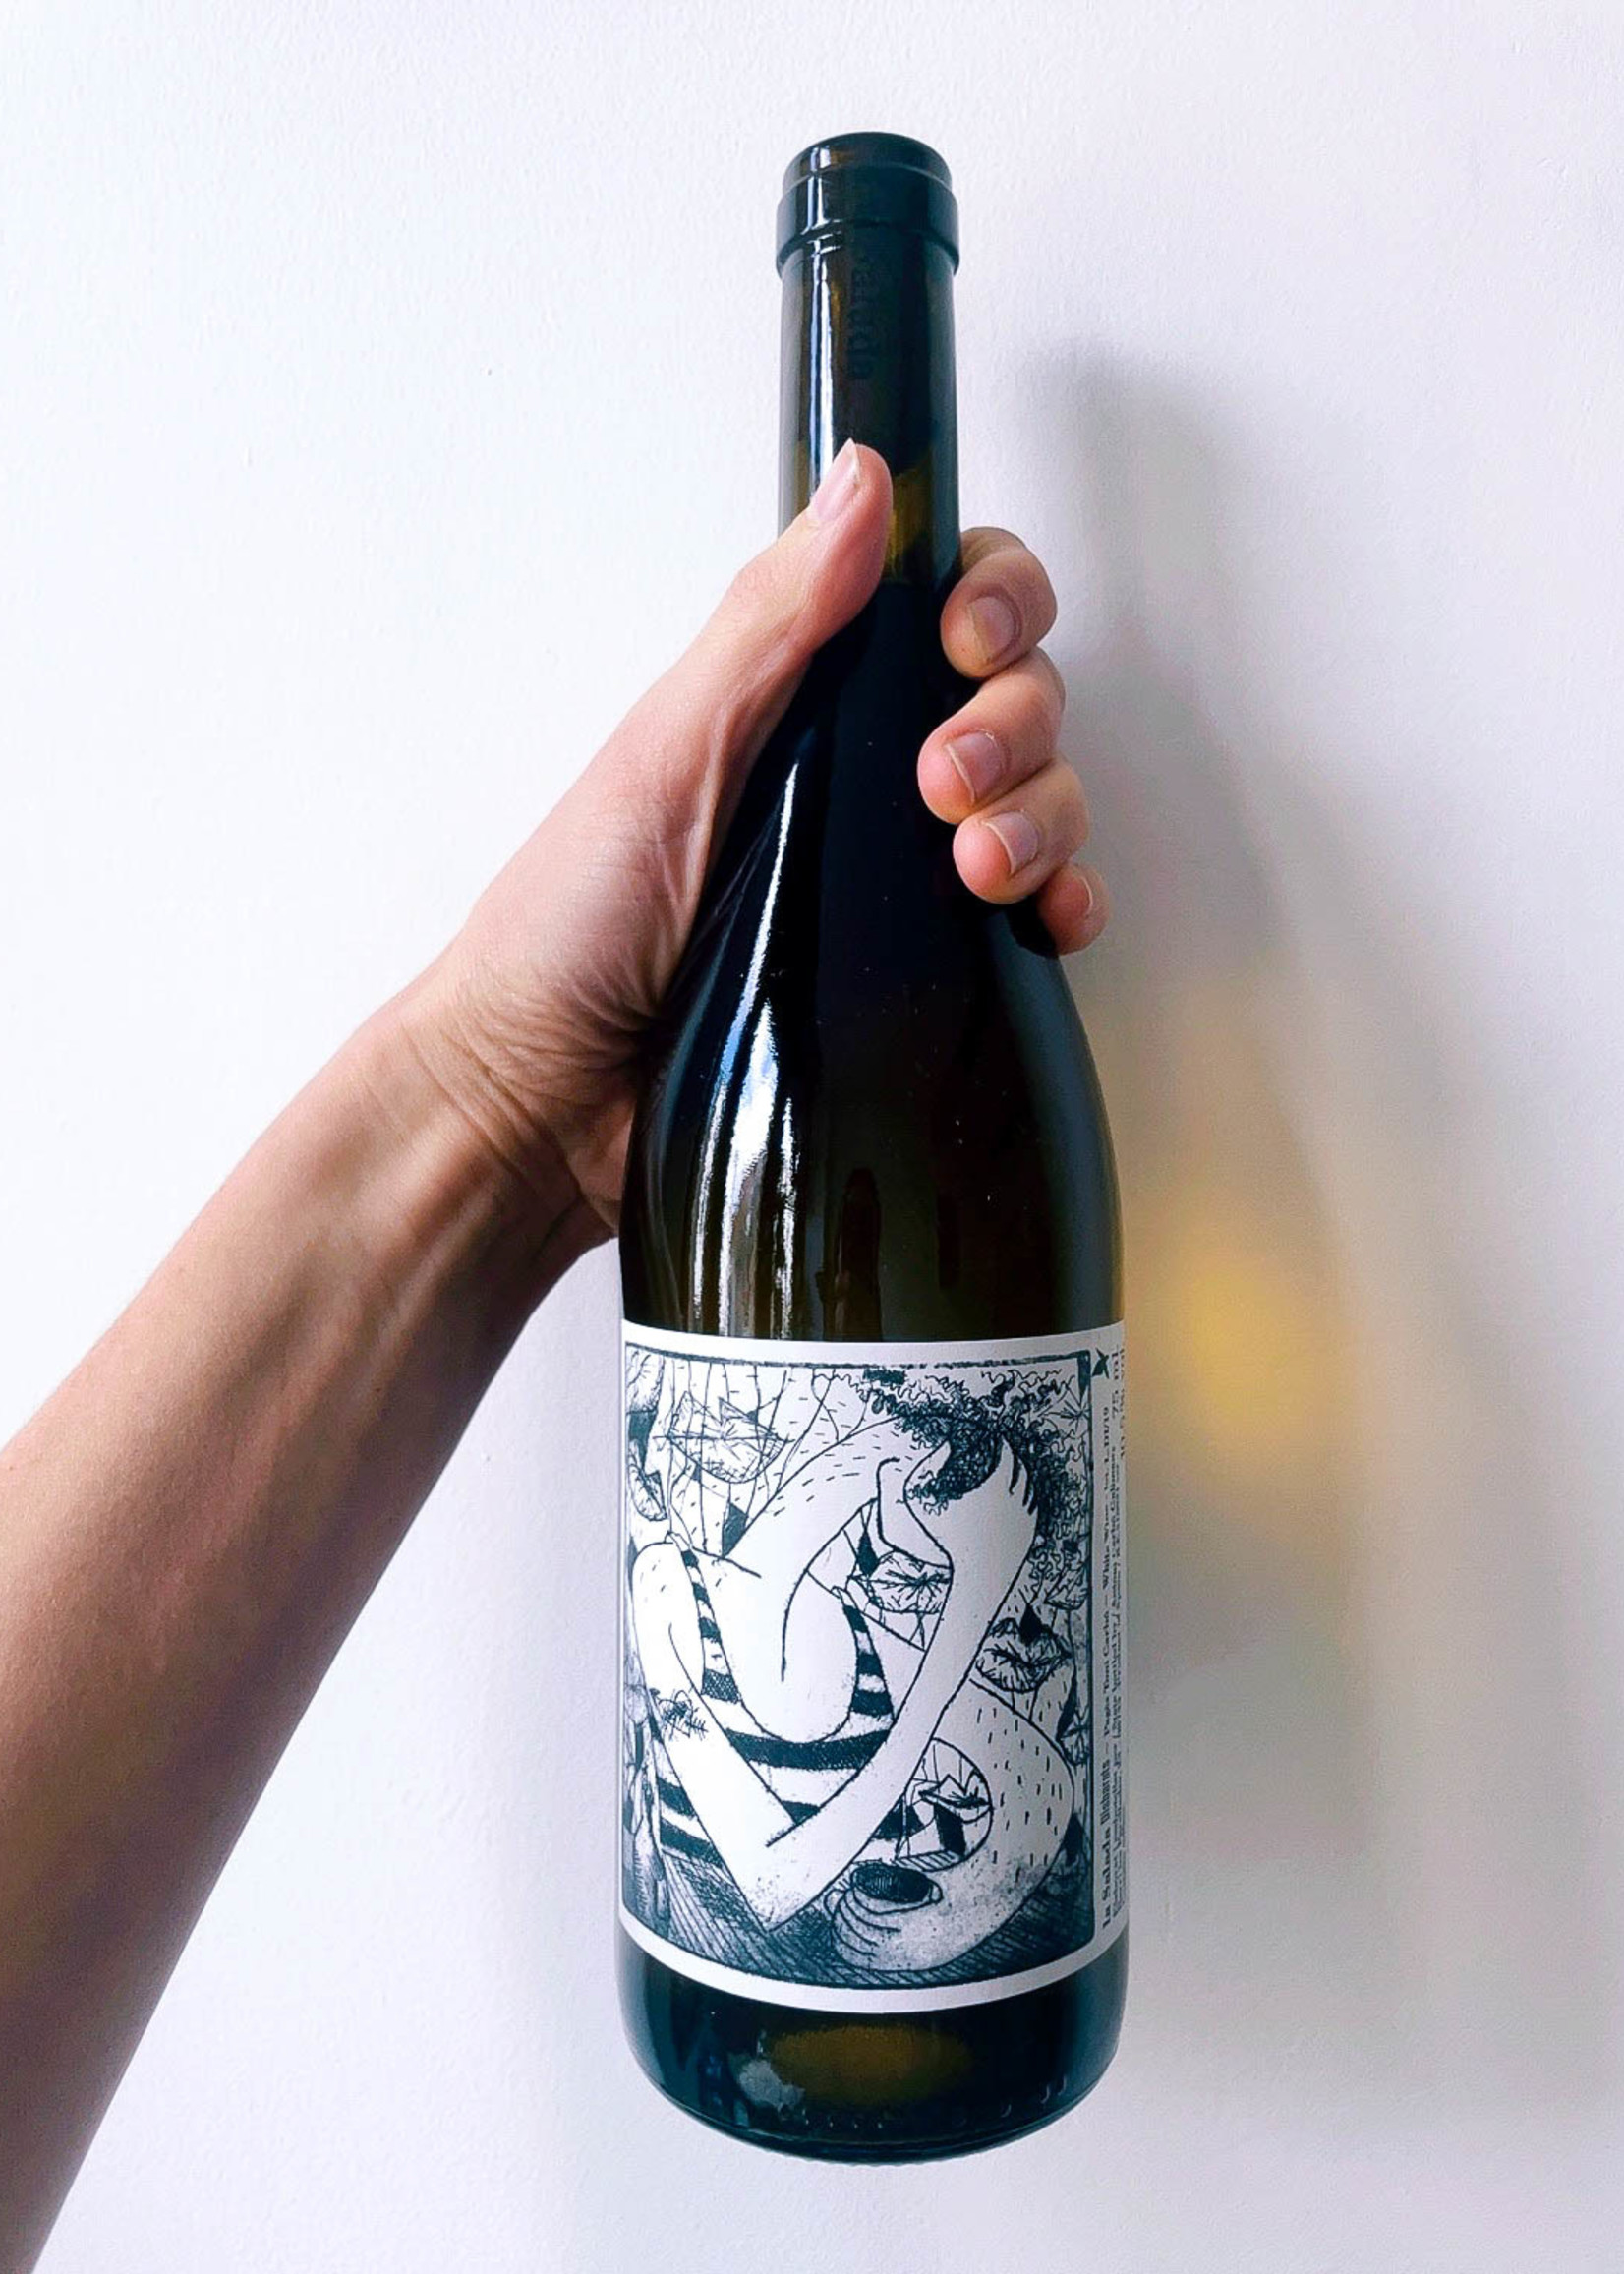 edelrot natural wine selections BOWIE - Volume 1 - wijnselectie